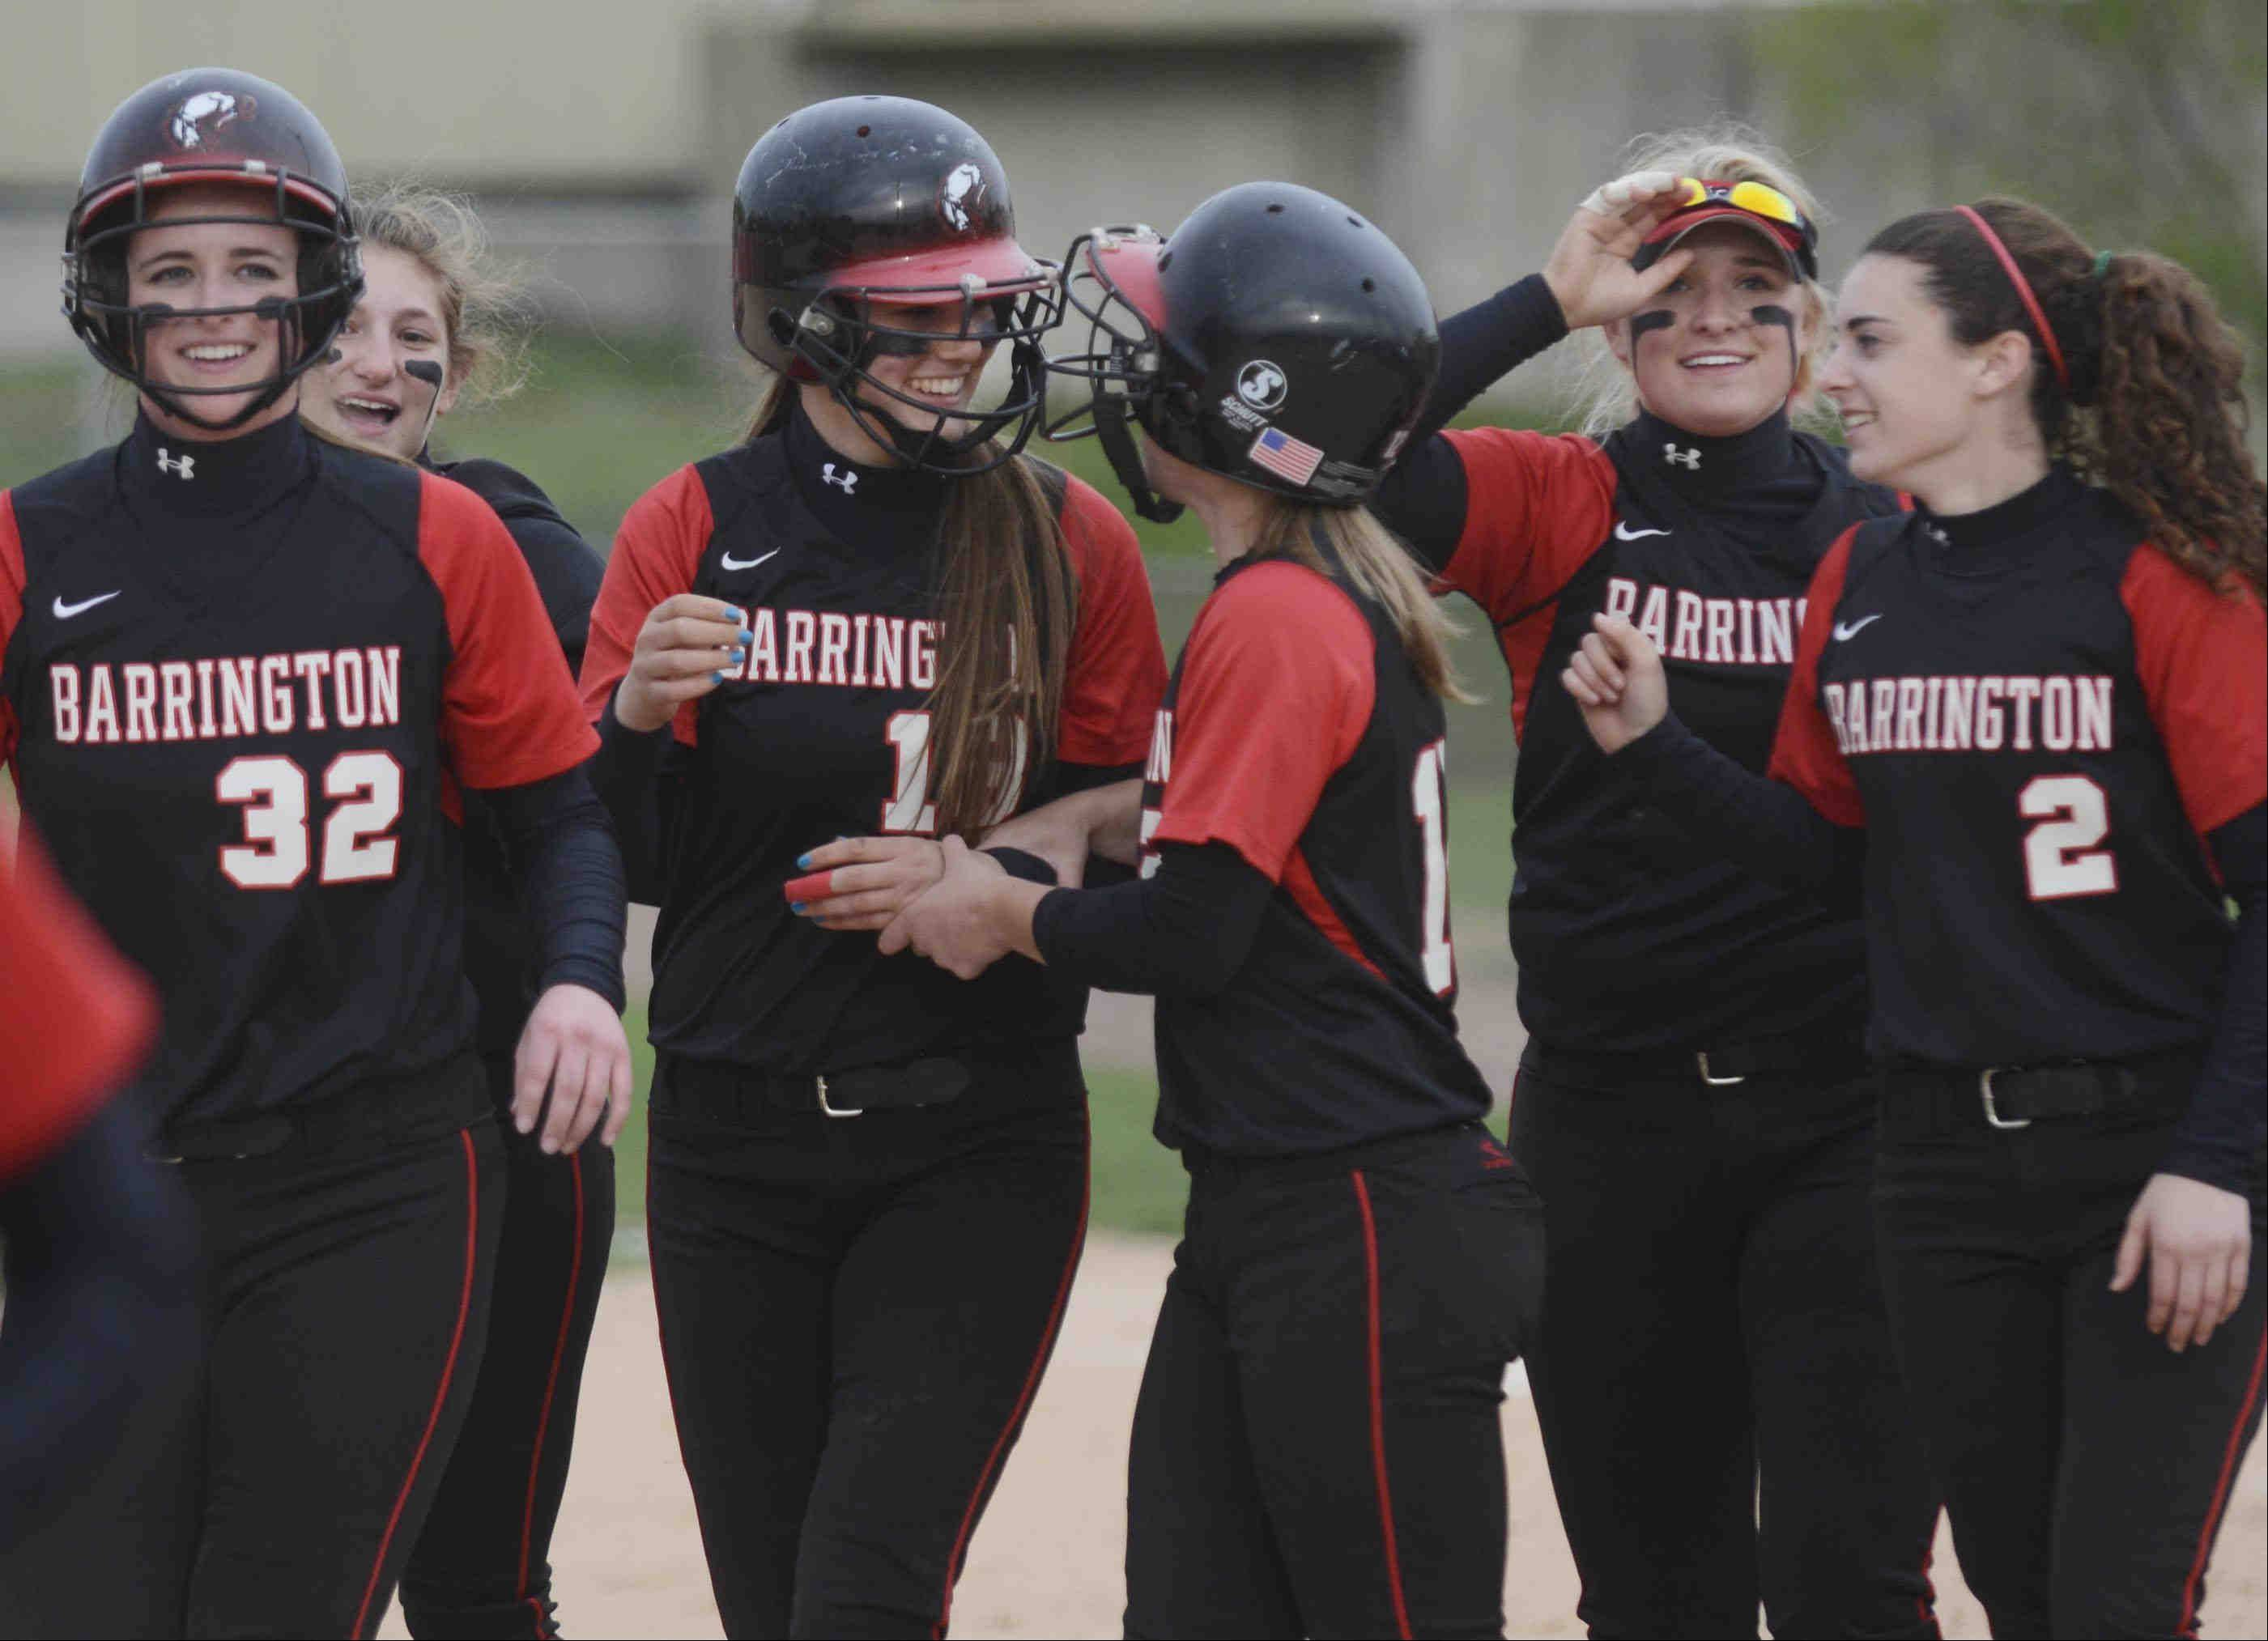 Barrington's Katie Dehnert, middle, is surrounded by smiling teammates after her two-out, bases-loaded groundball drove in the winning run Monday at the Fields of Dreams in Barrington. Barrington completed a perfect run against the Mid-Suburban League with a 1-0 victory.